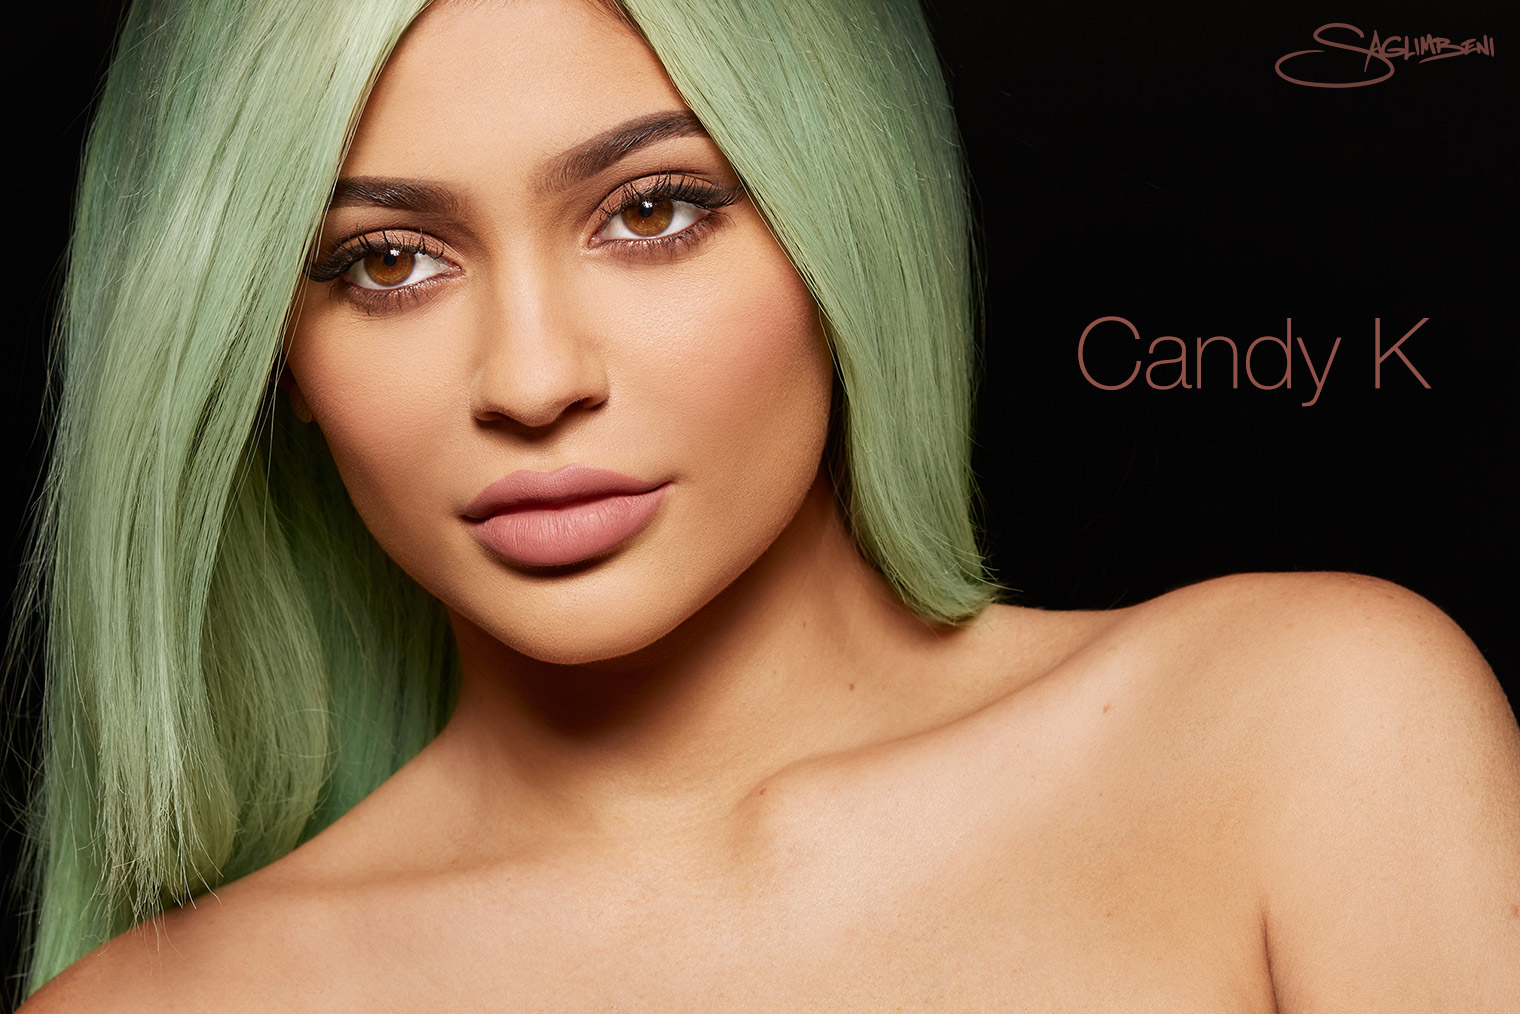 Candy-K-Kylie-LipKit-Photo-Nick-Saglimbeni-1520px